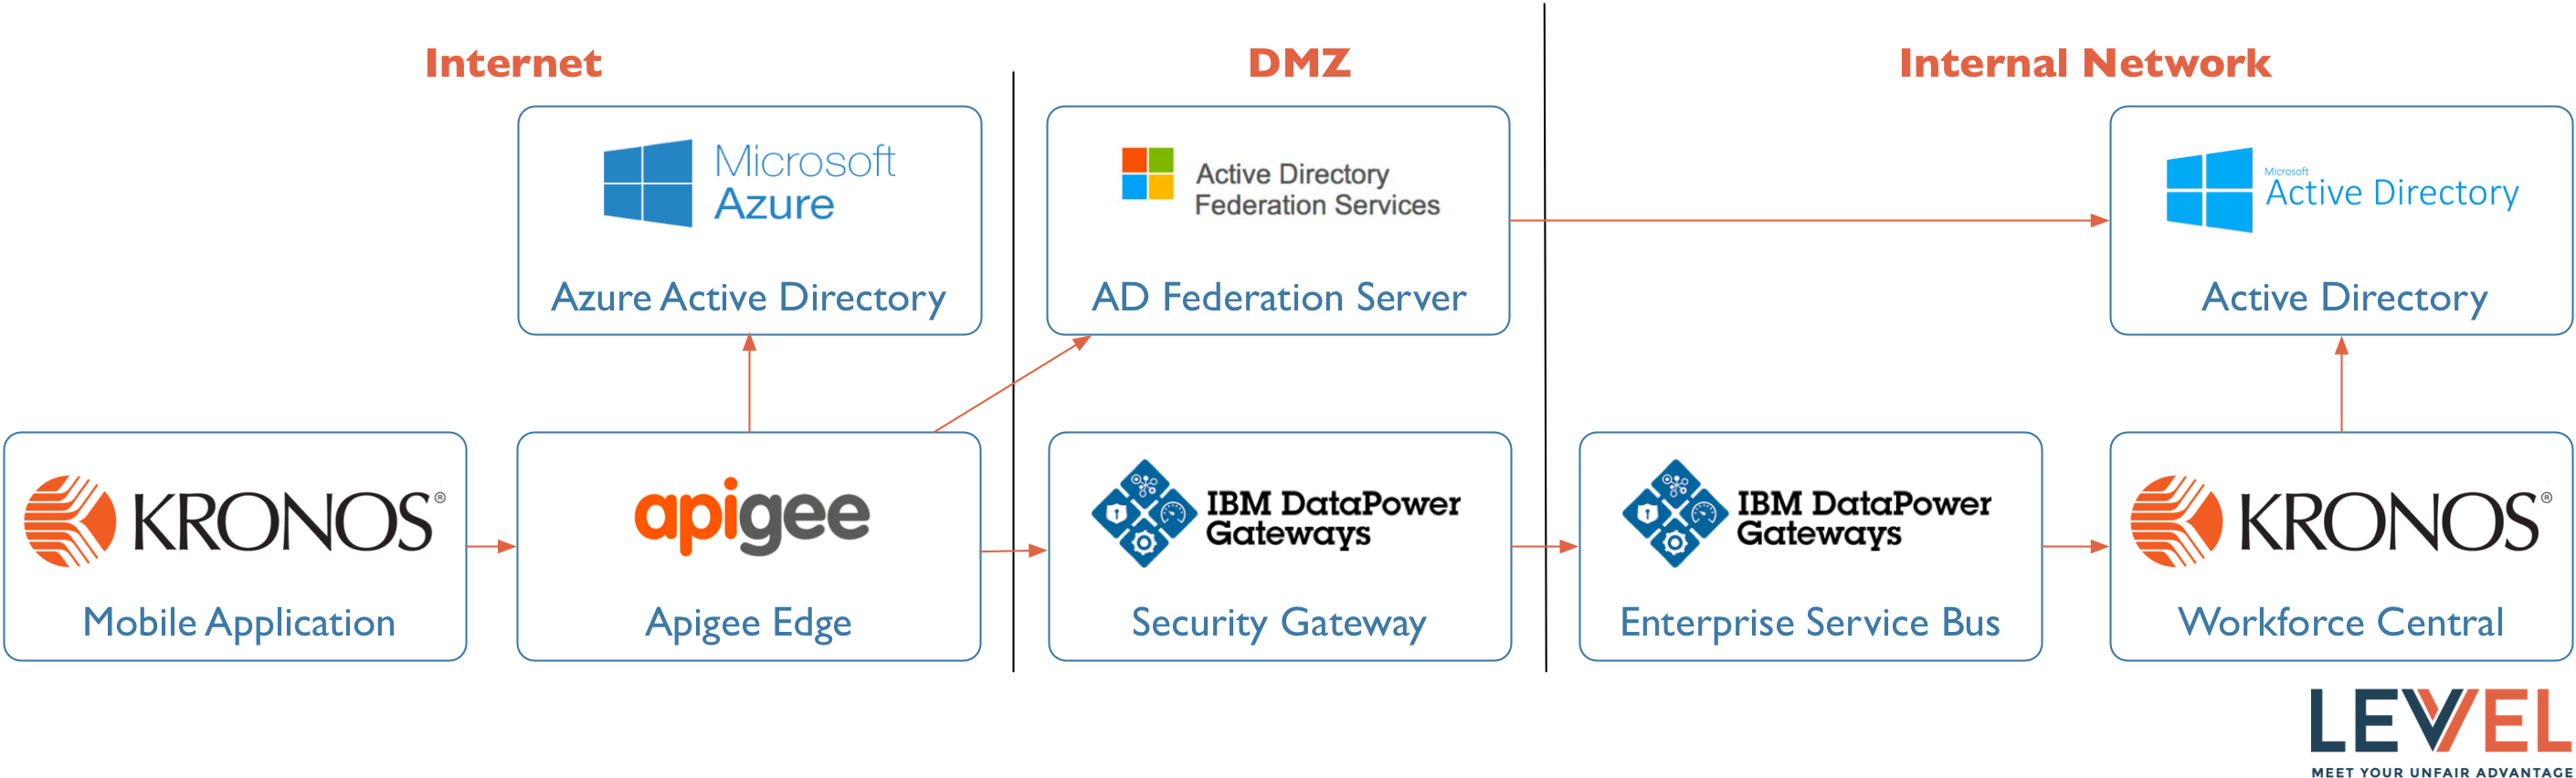 API MANAGEMENT AND PERIMETER SECURITY FOR COTS APPLICATIONS